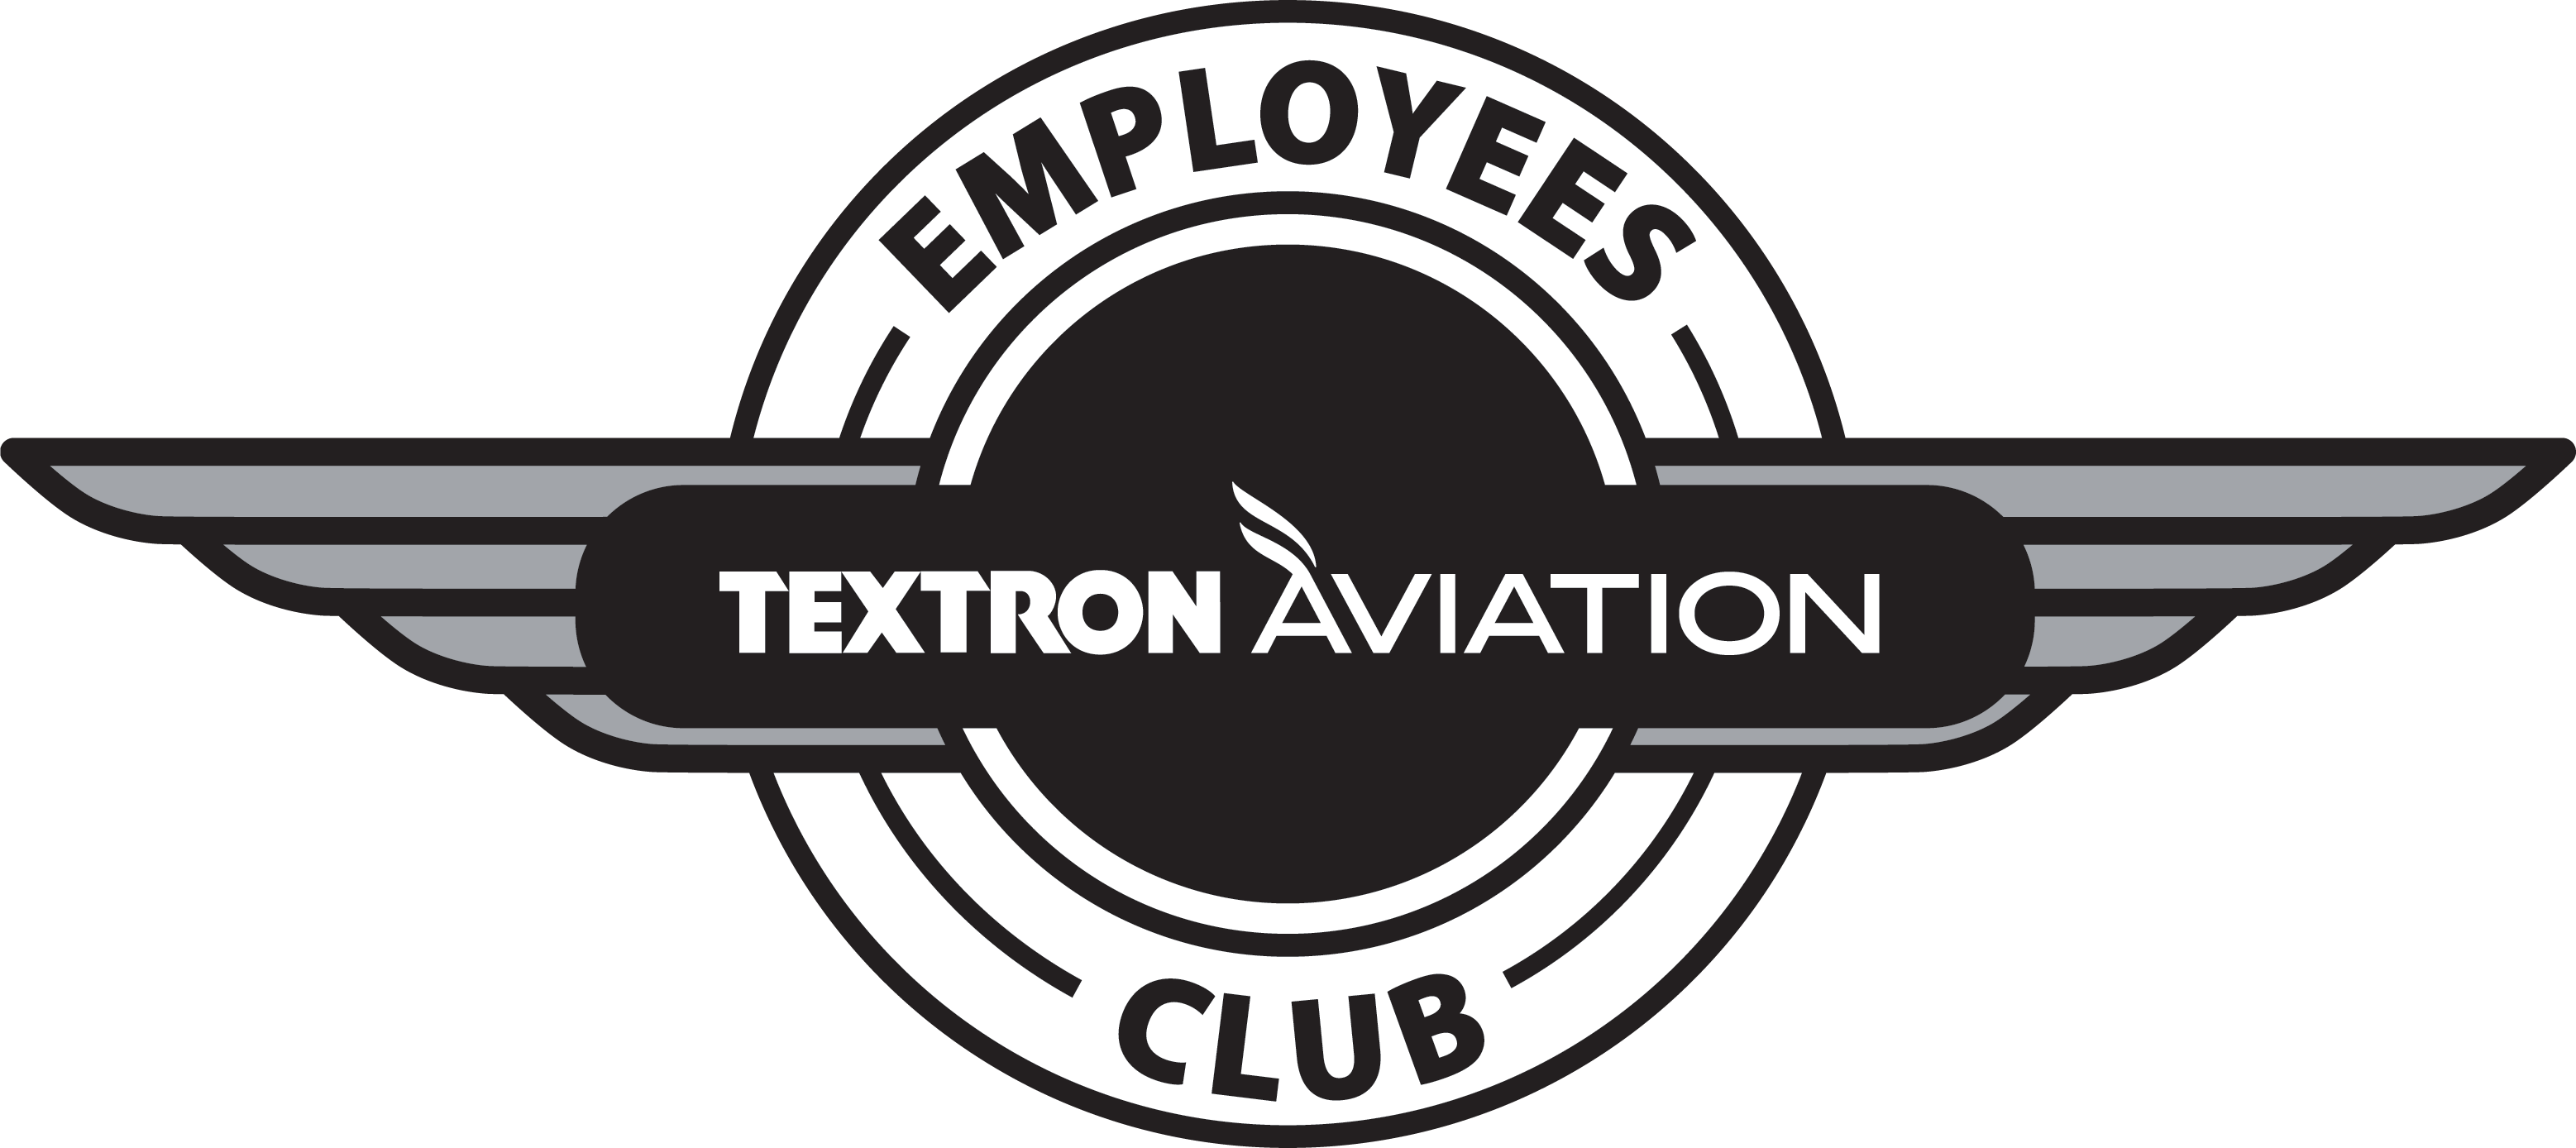 Textron Aviation Employees Club